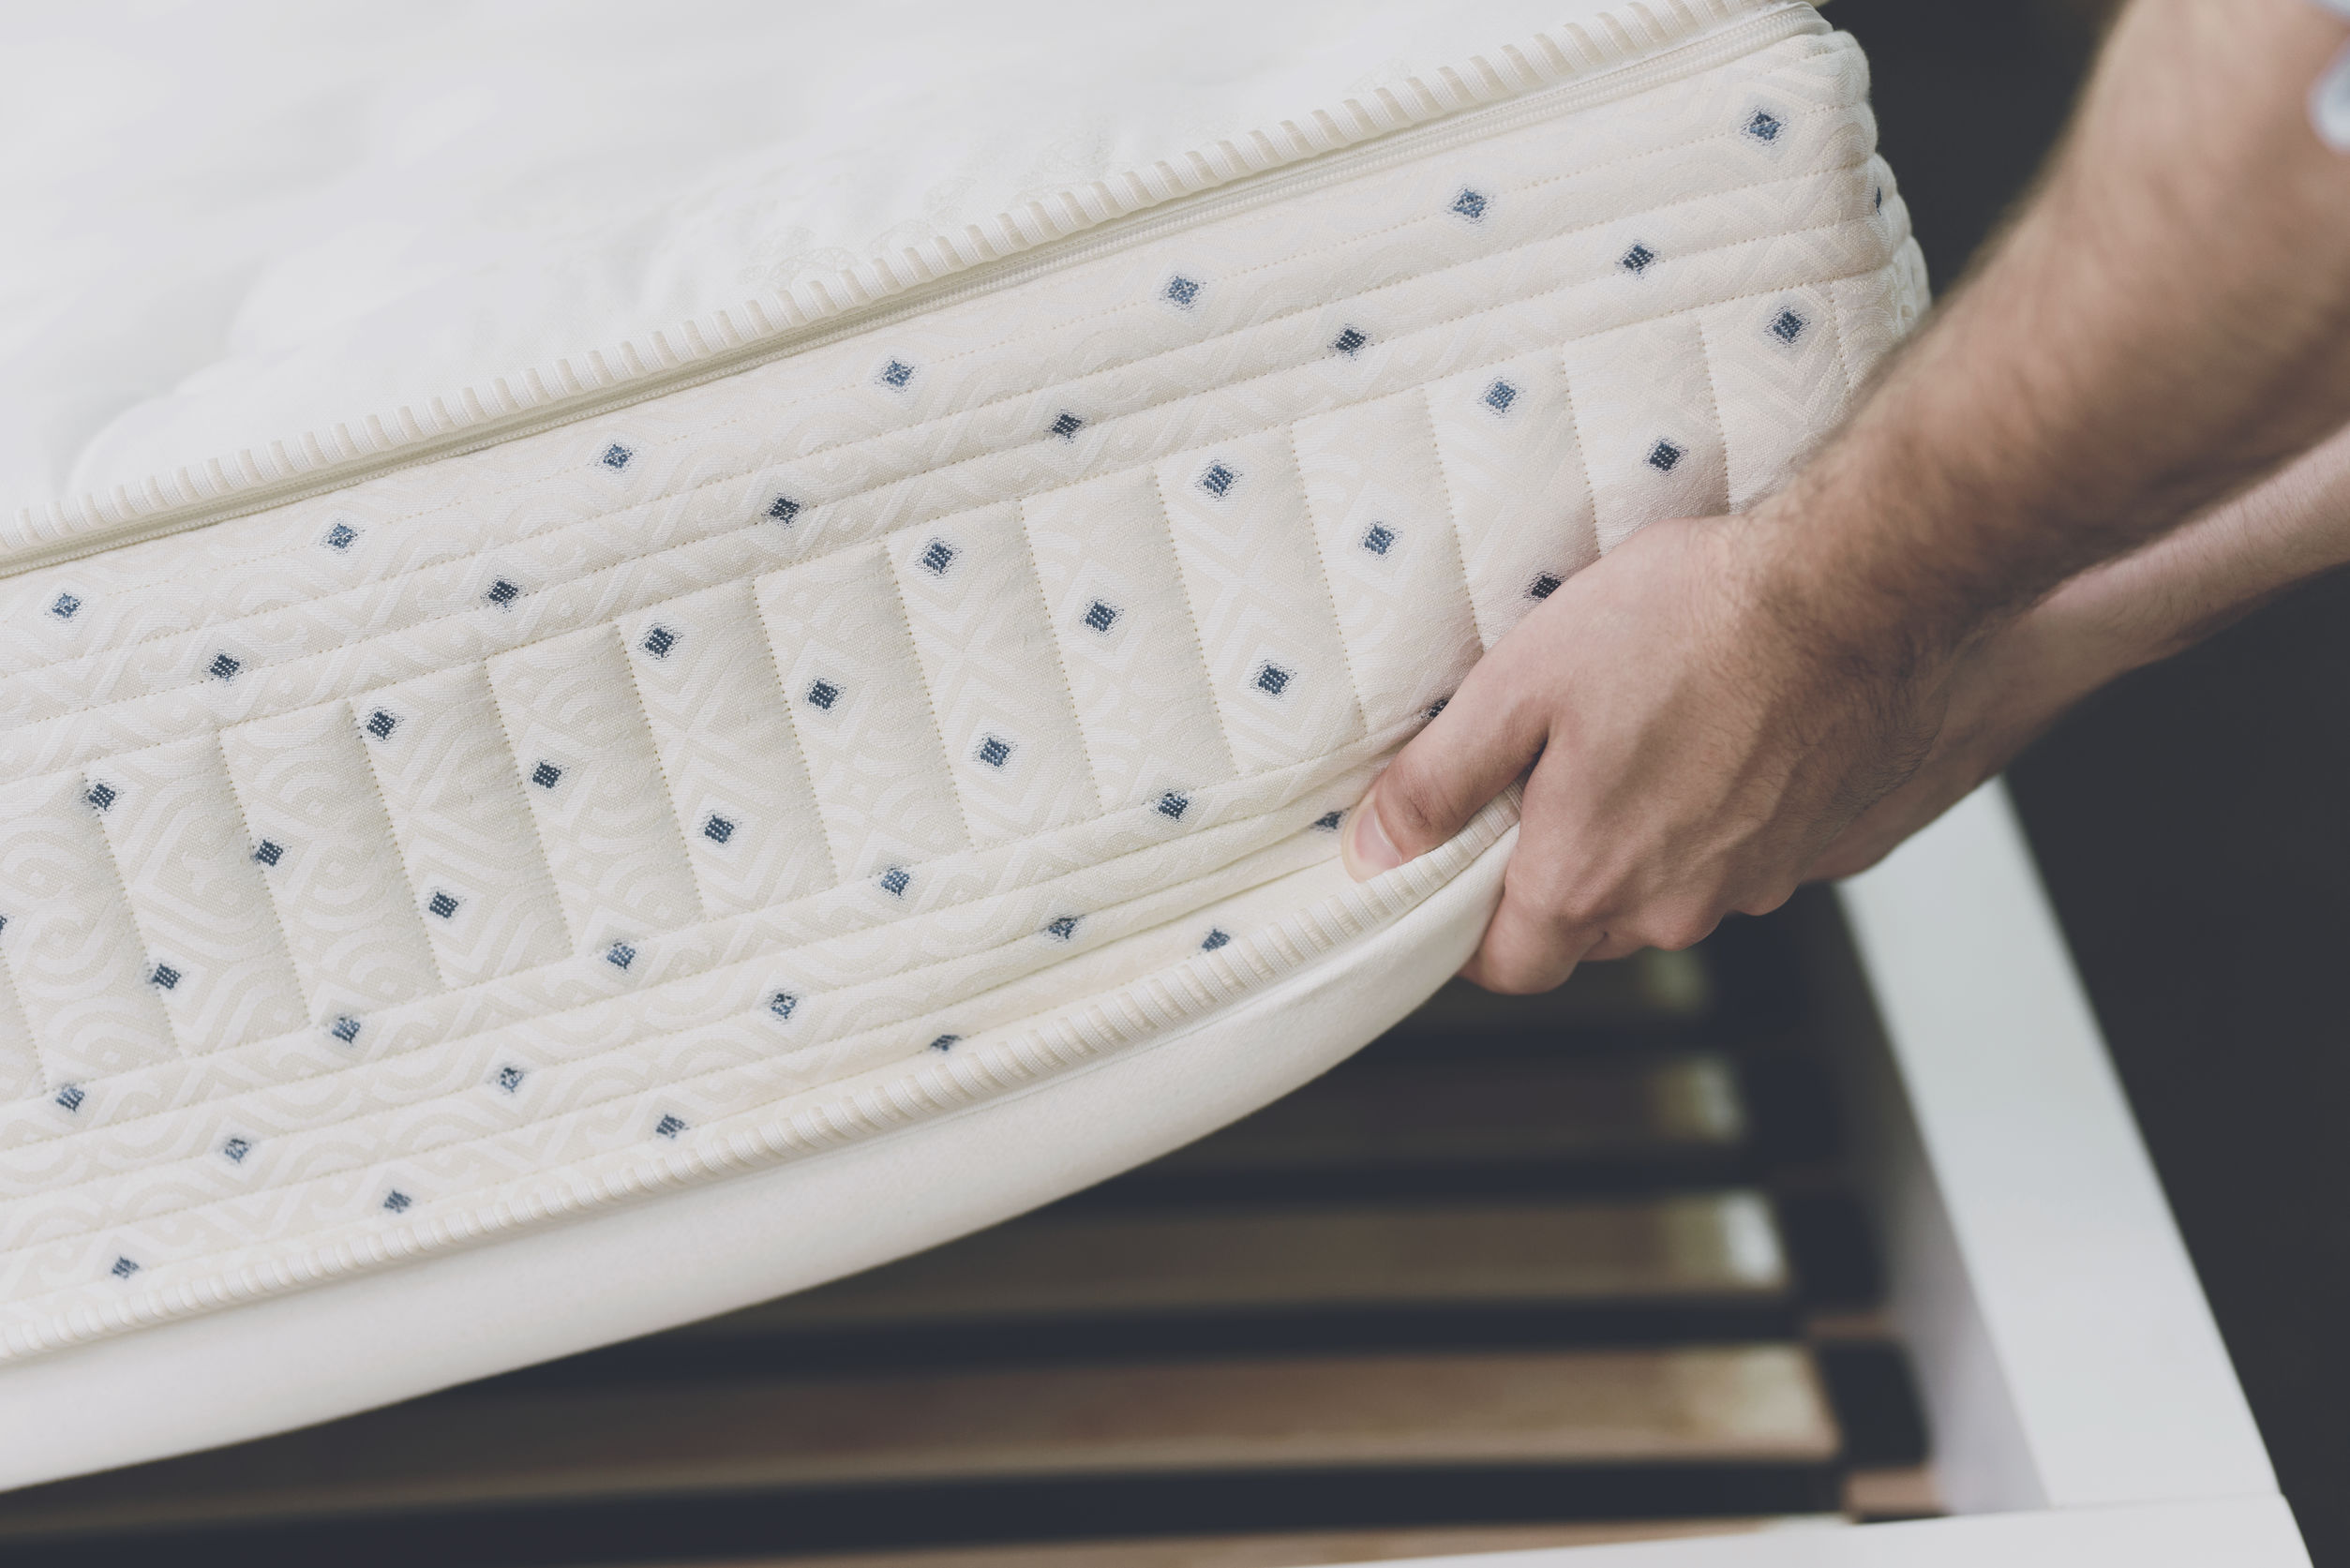 Best Mattress 2020: Shopping Guide & Review